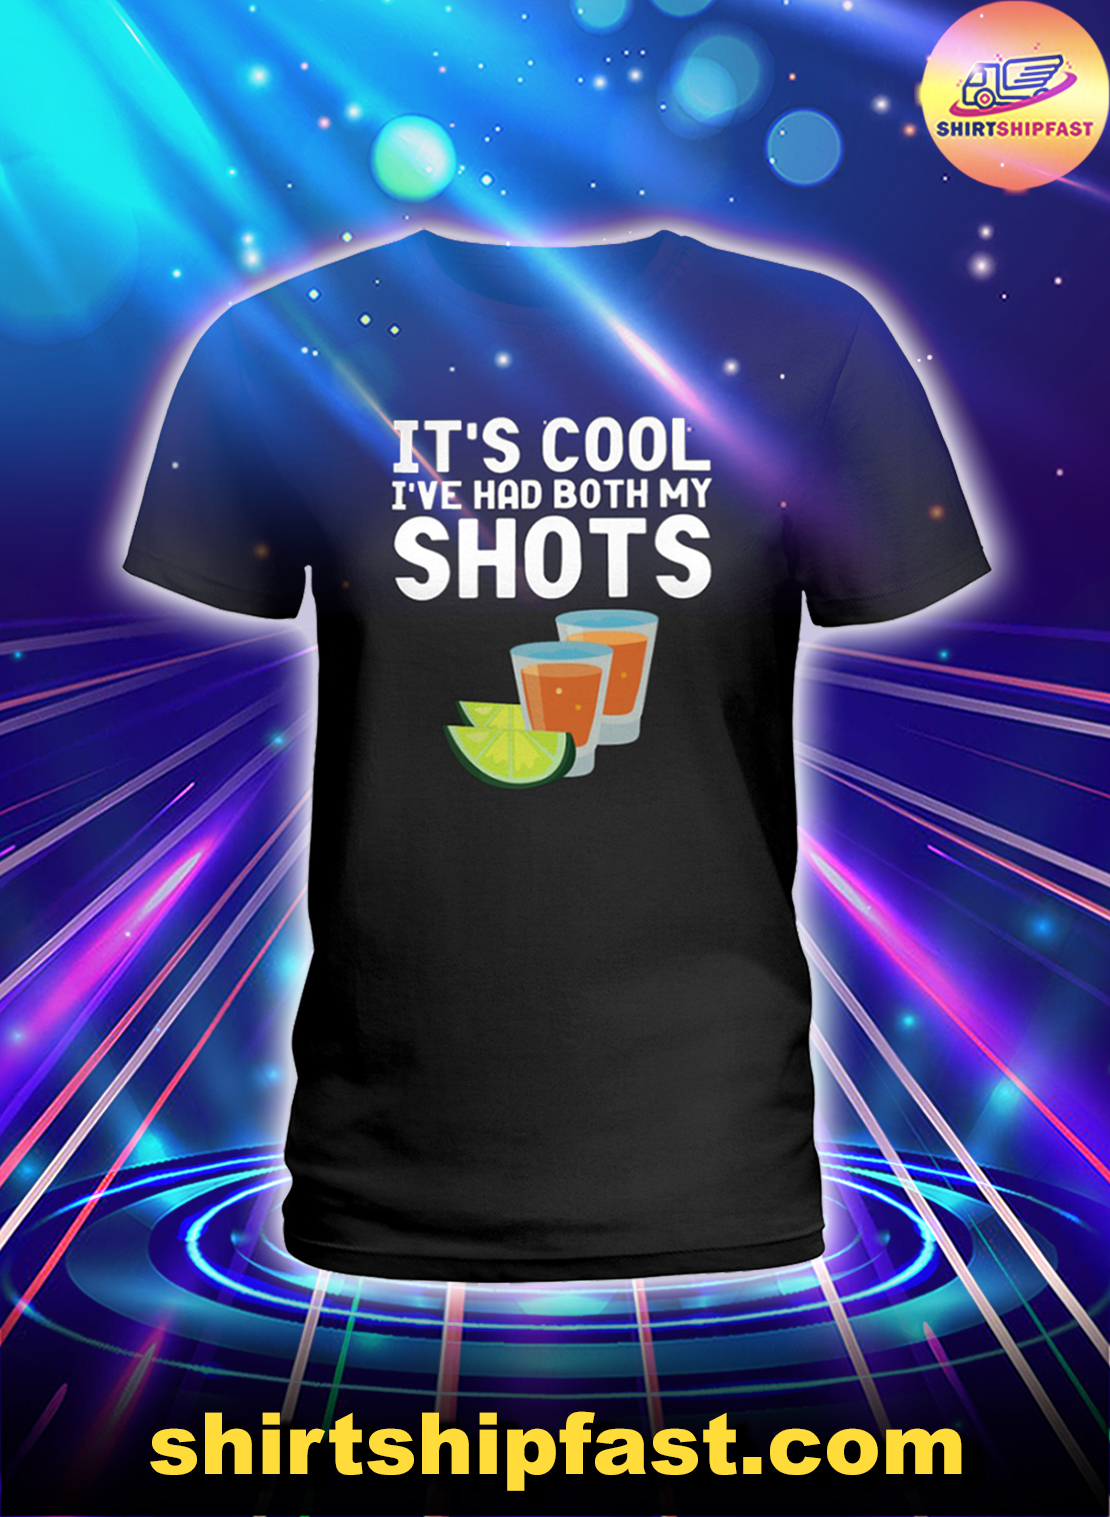 Tequila It's cool I've had both my shots lady shirt